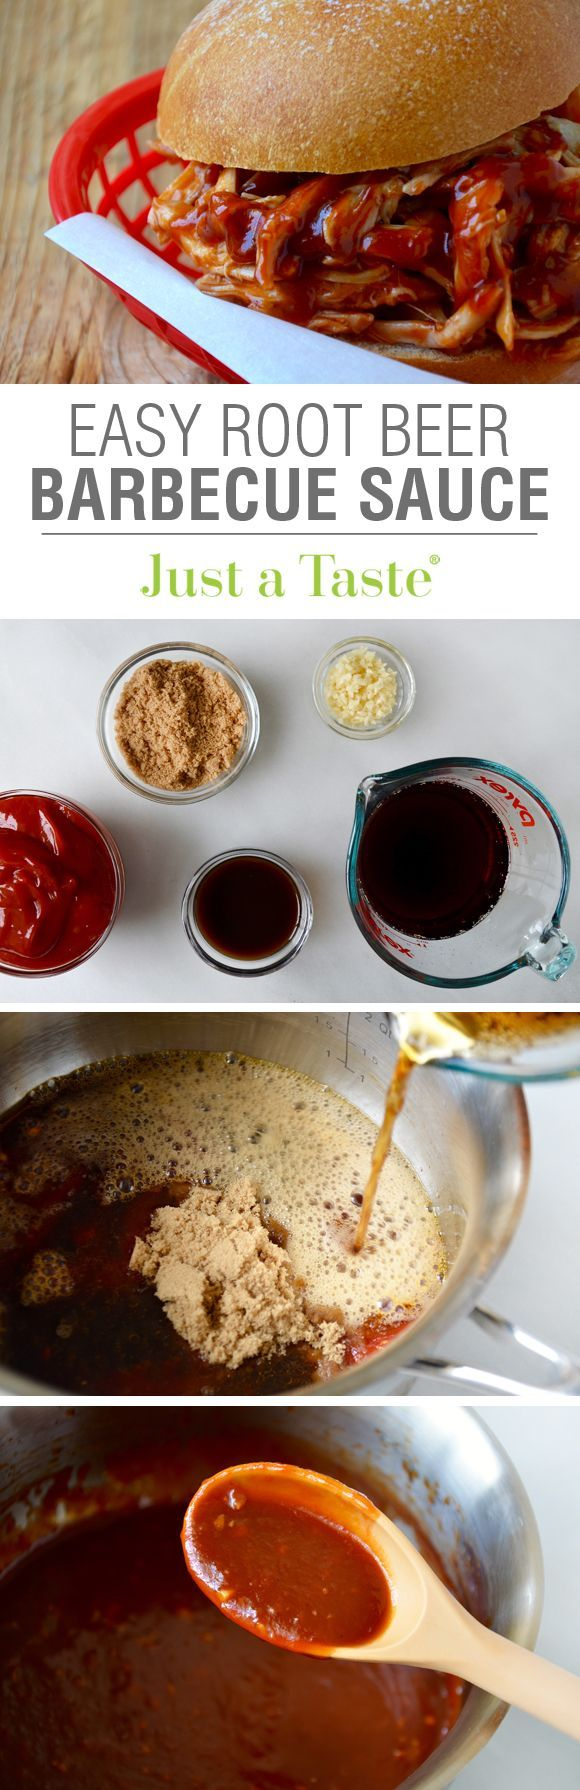 Easy Homemade Root Beer Barbecue Sauce recipe from http